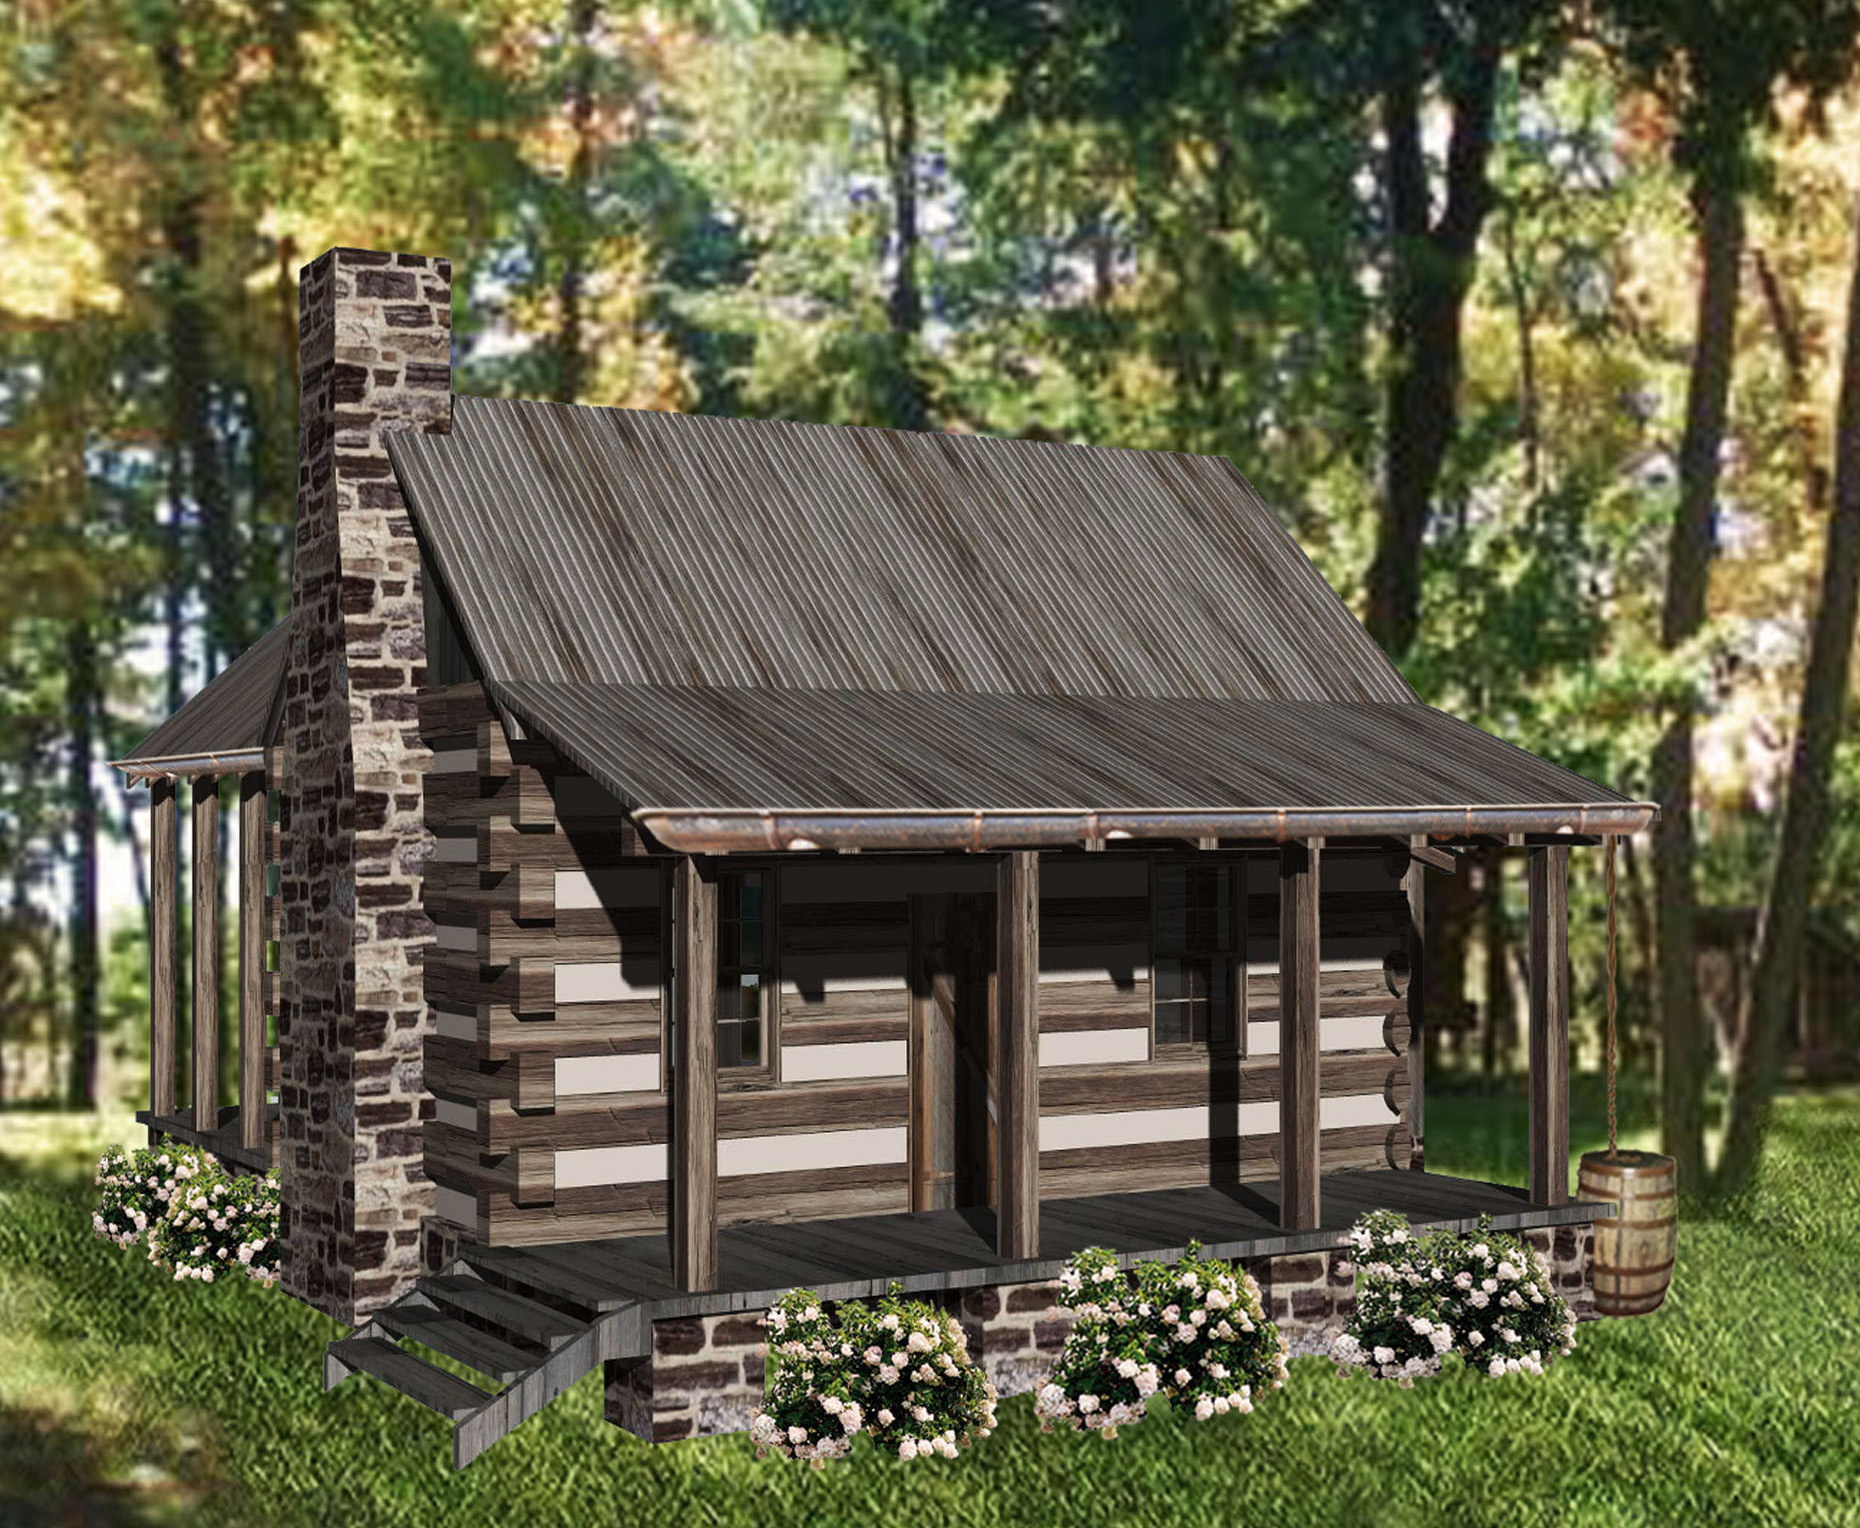 Cozy getaway log cabin 13328ww architectural designs for Log cabin designs